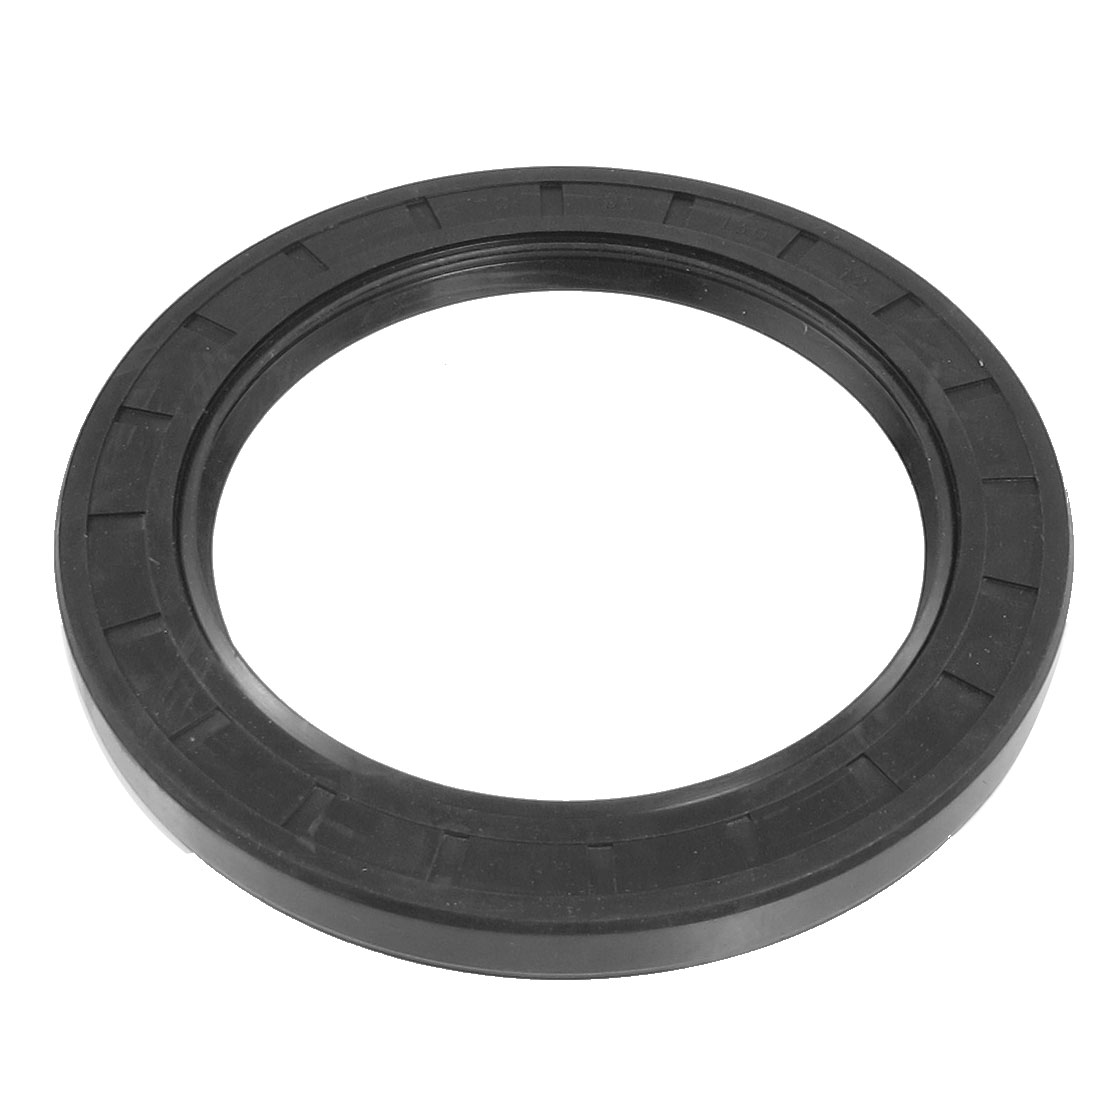 95mm x 130mm x 12mm Metric Double Lipped Rotary Shaft Oil Seal TC